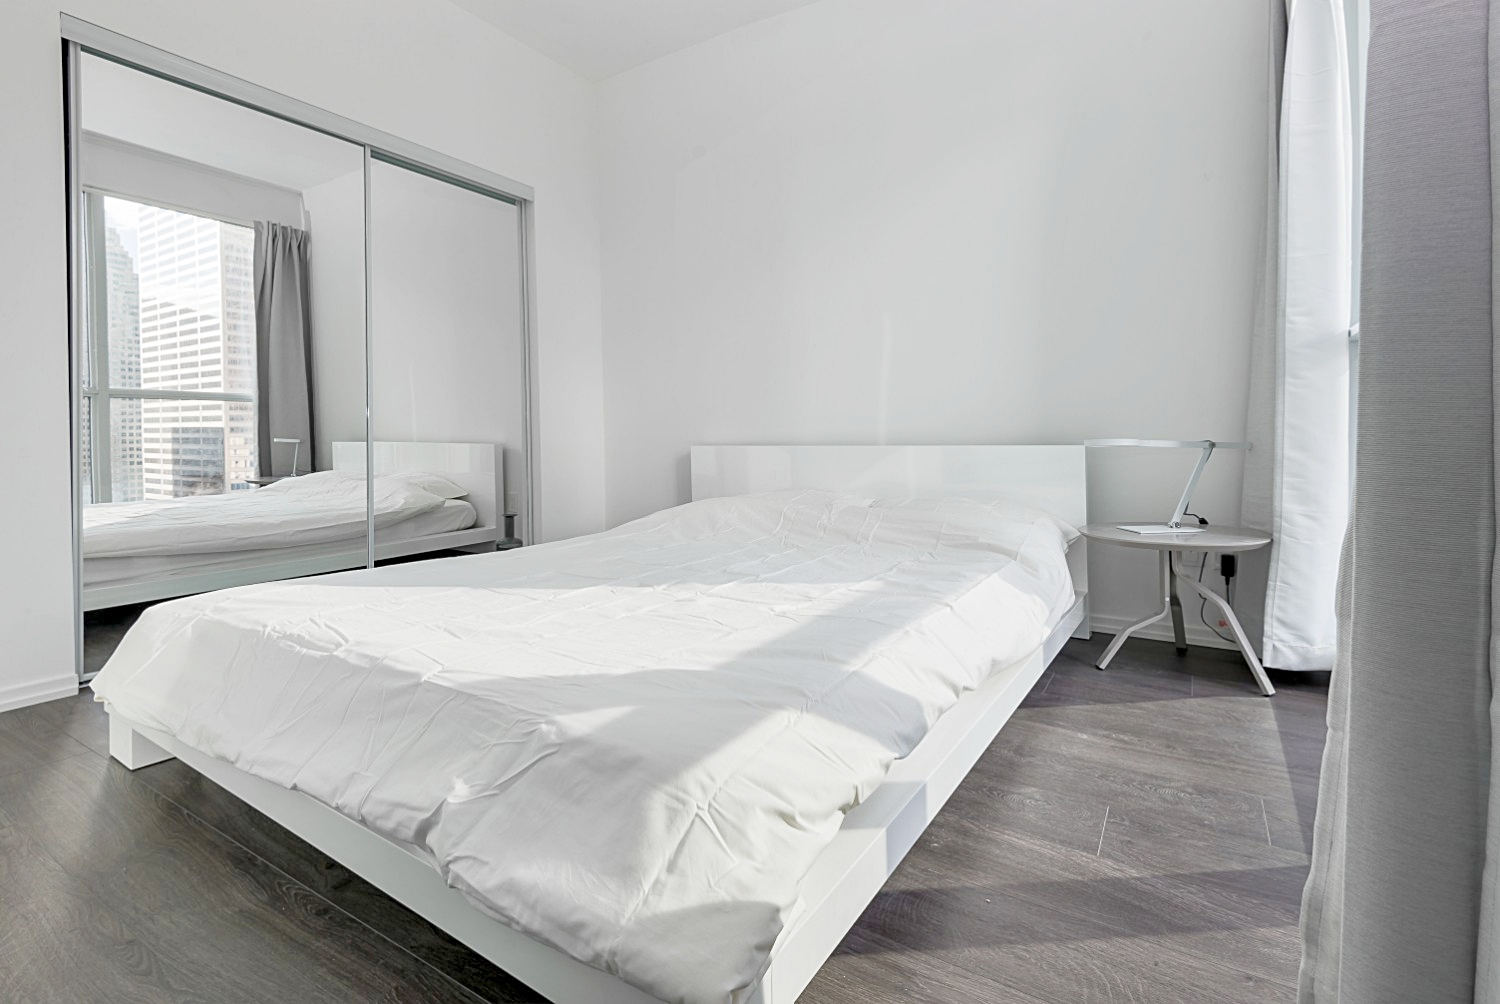 furnished apartments toronto Bedroom Luxury